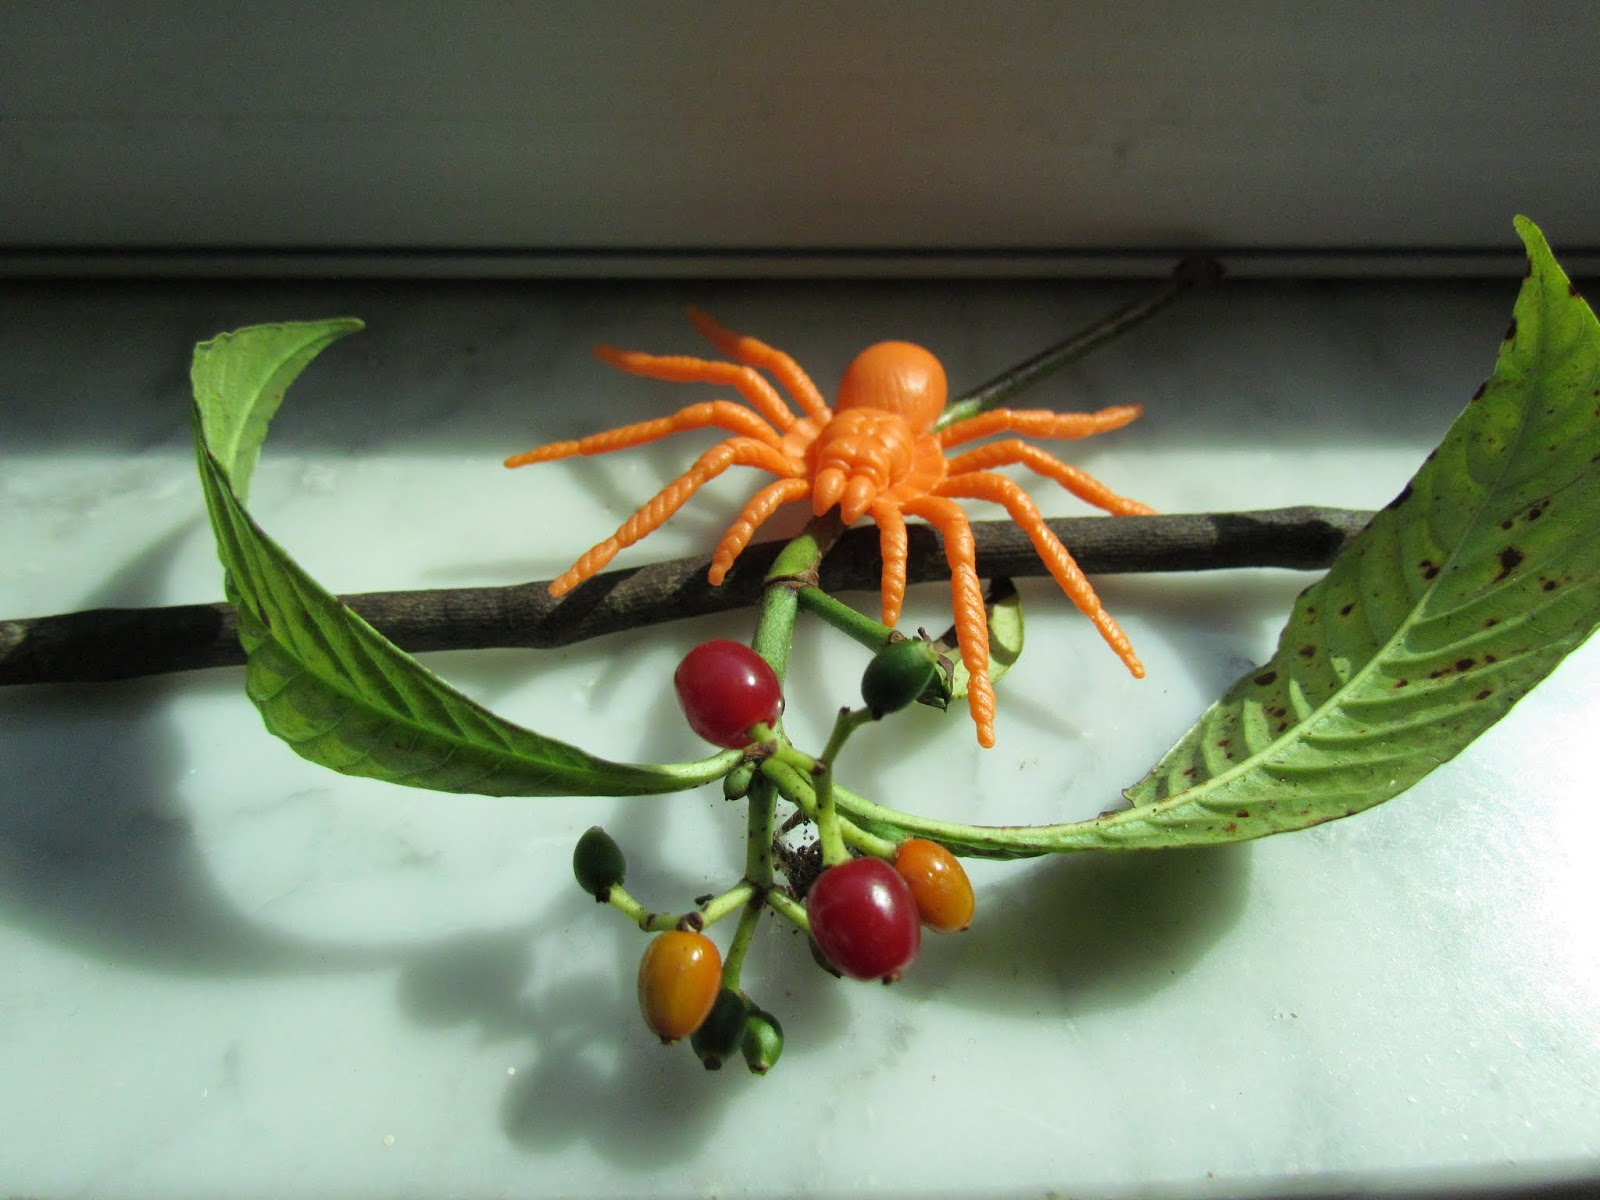 An Orange Toy Halloween Spider and Red Berries Forest Foliage